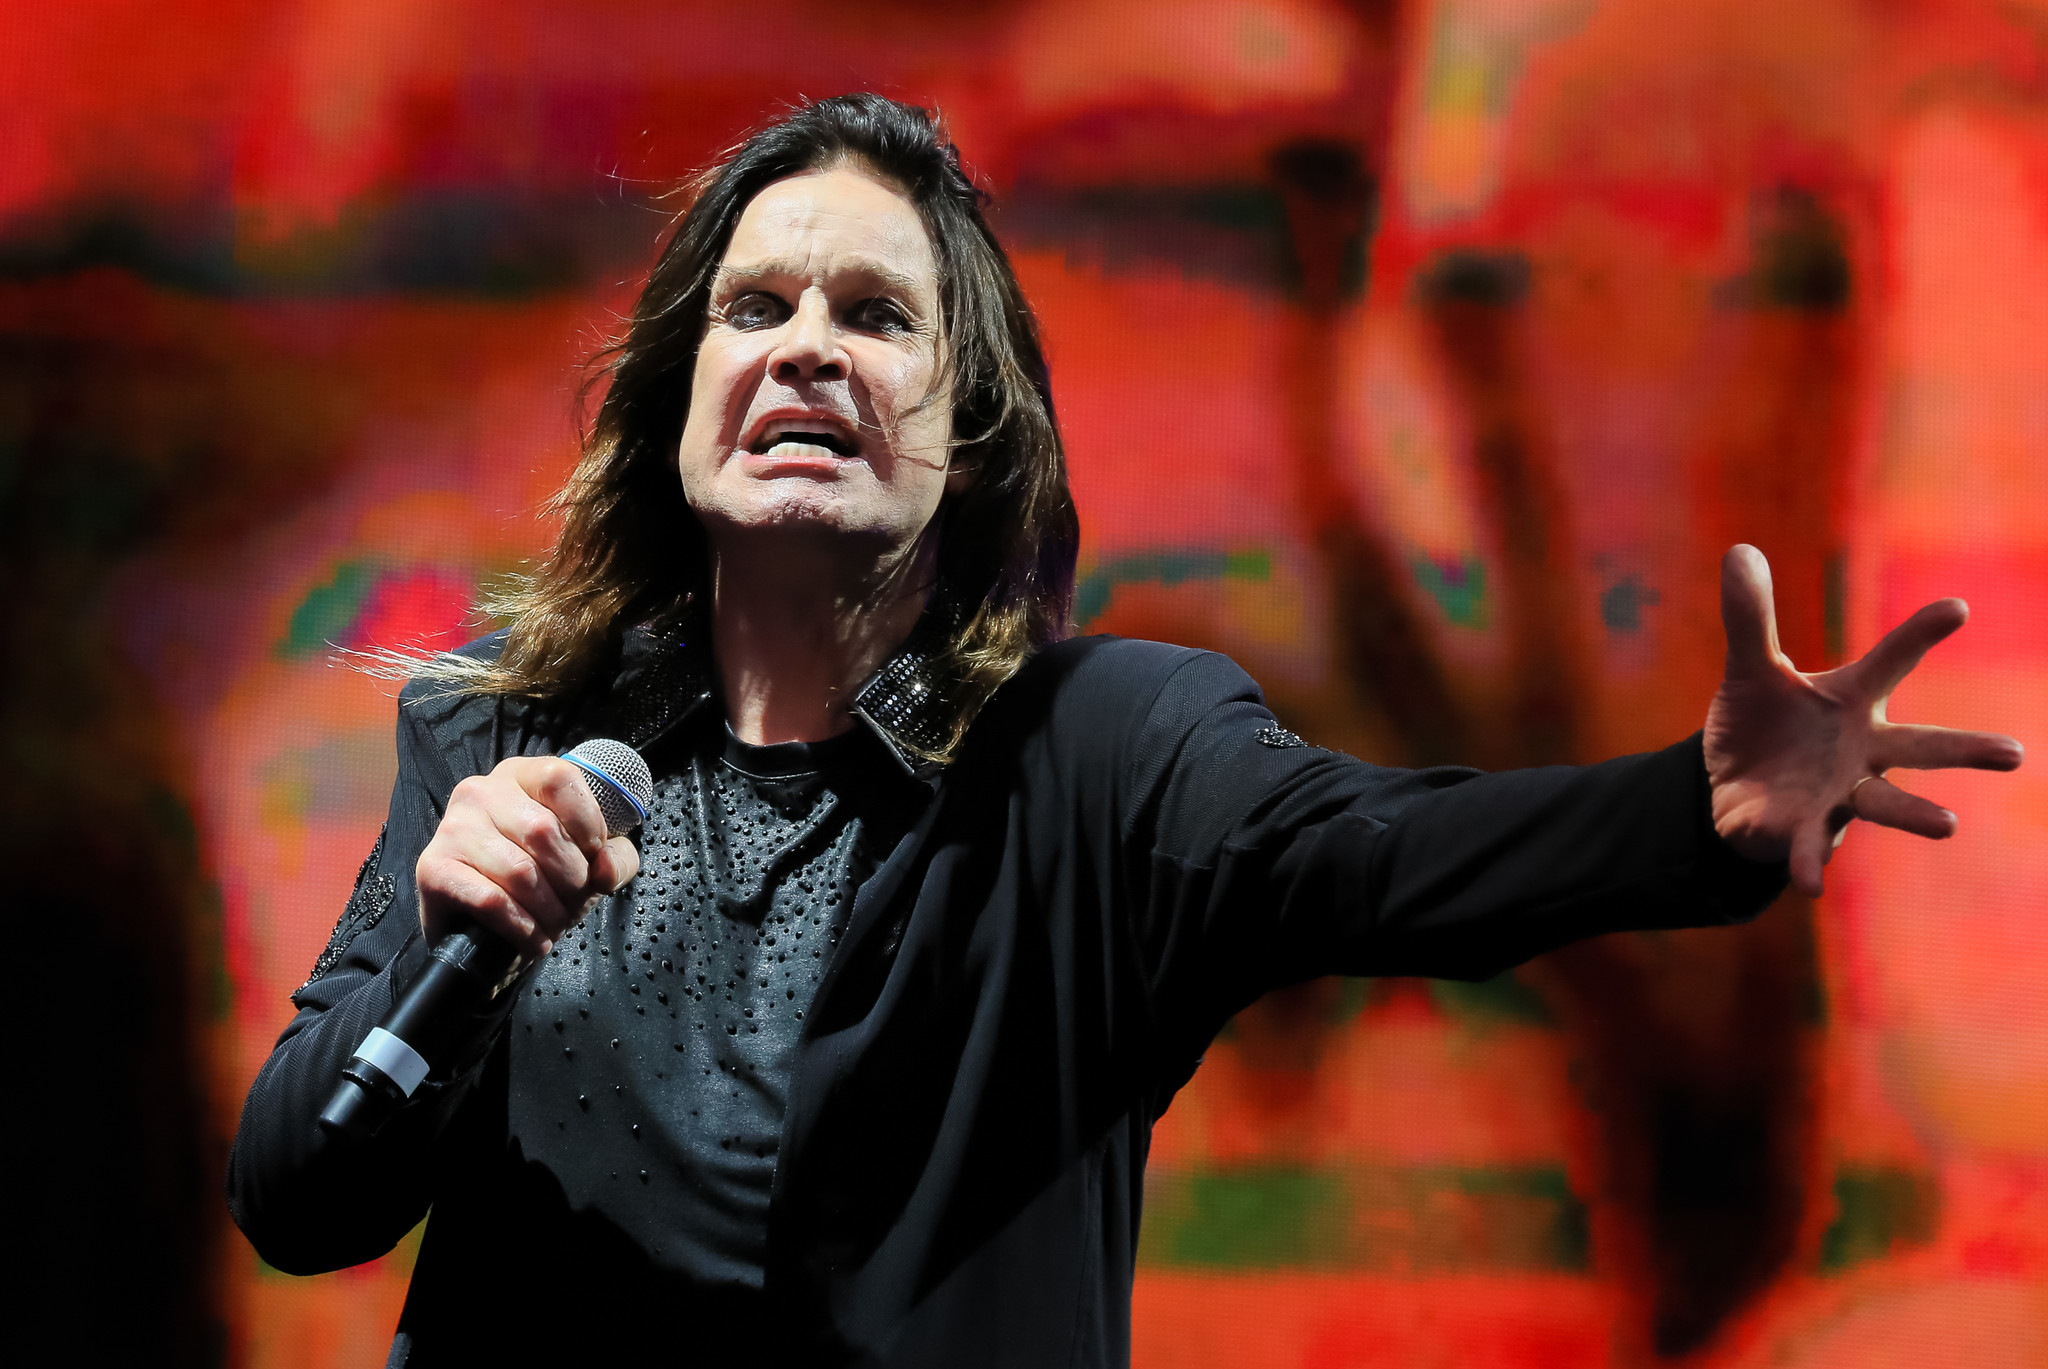 Ozzy Osbourne postpones concert after hand surgery